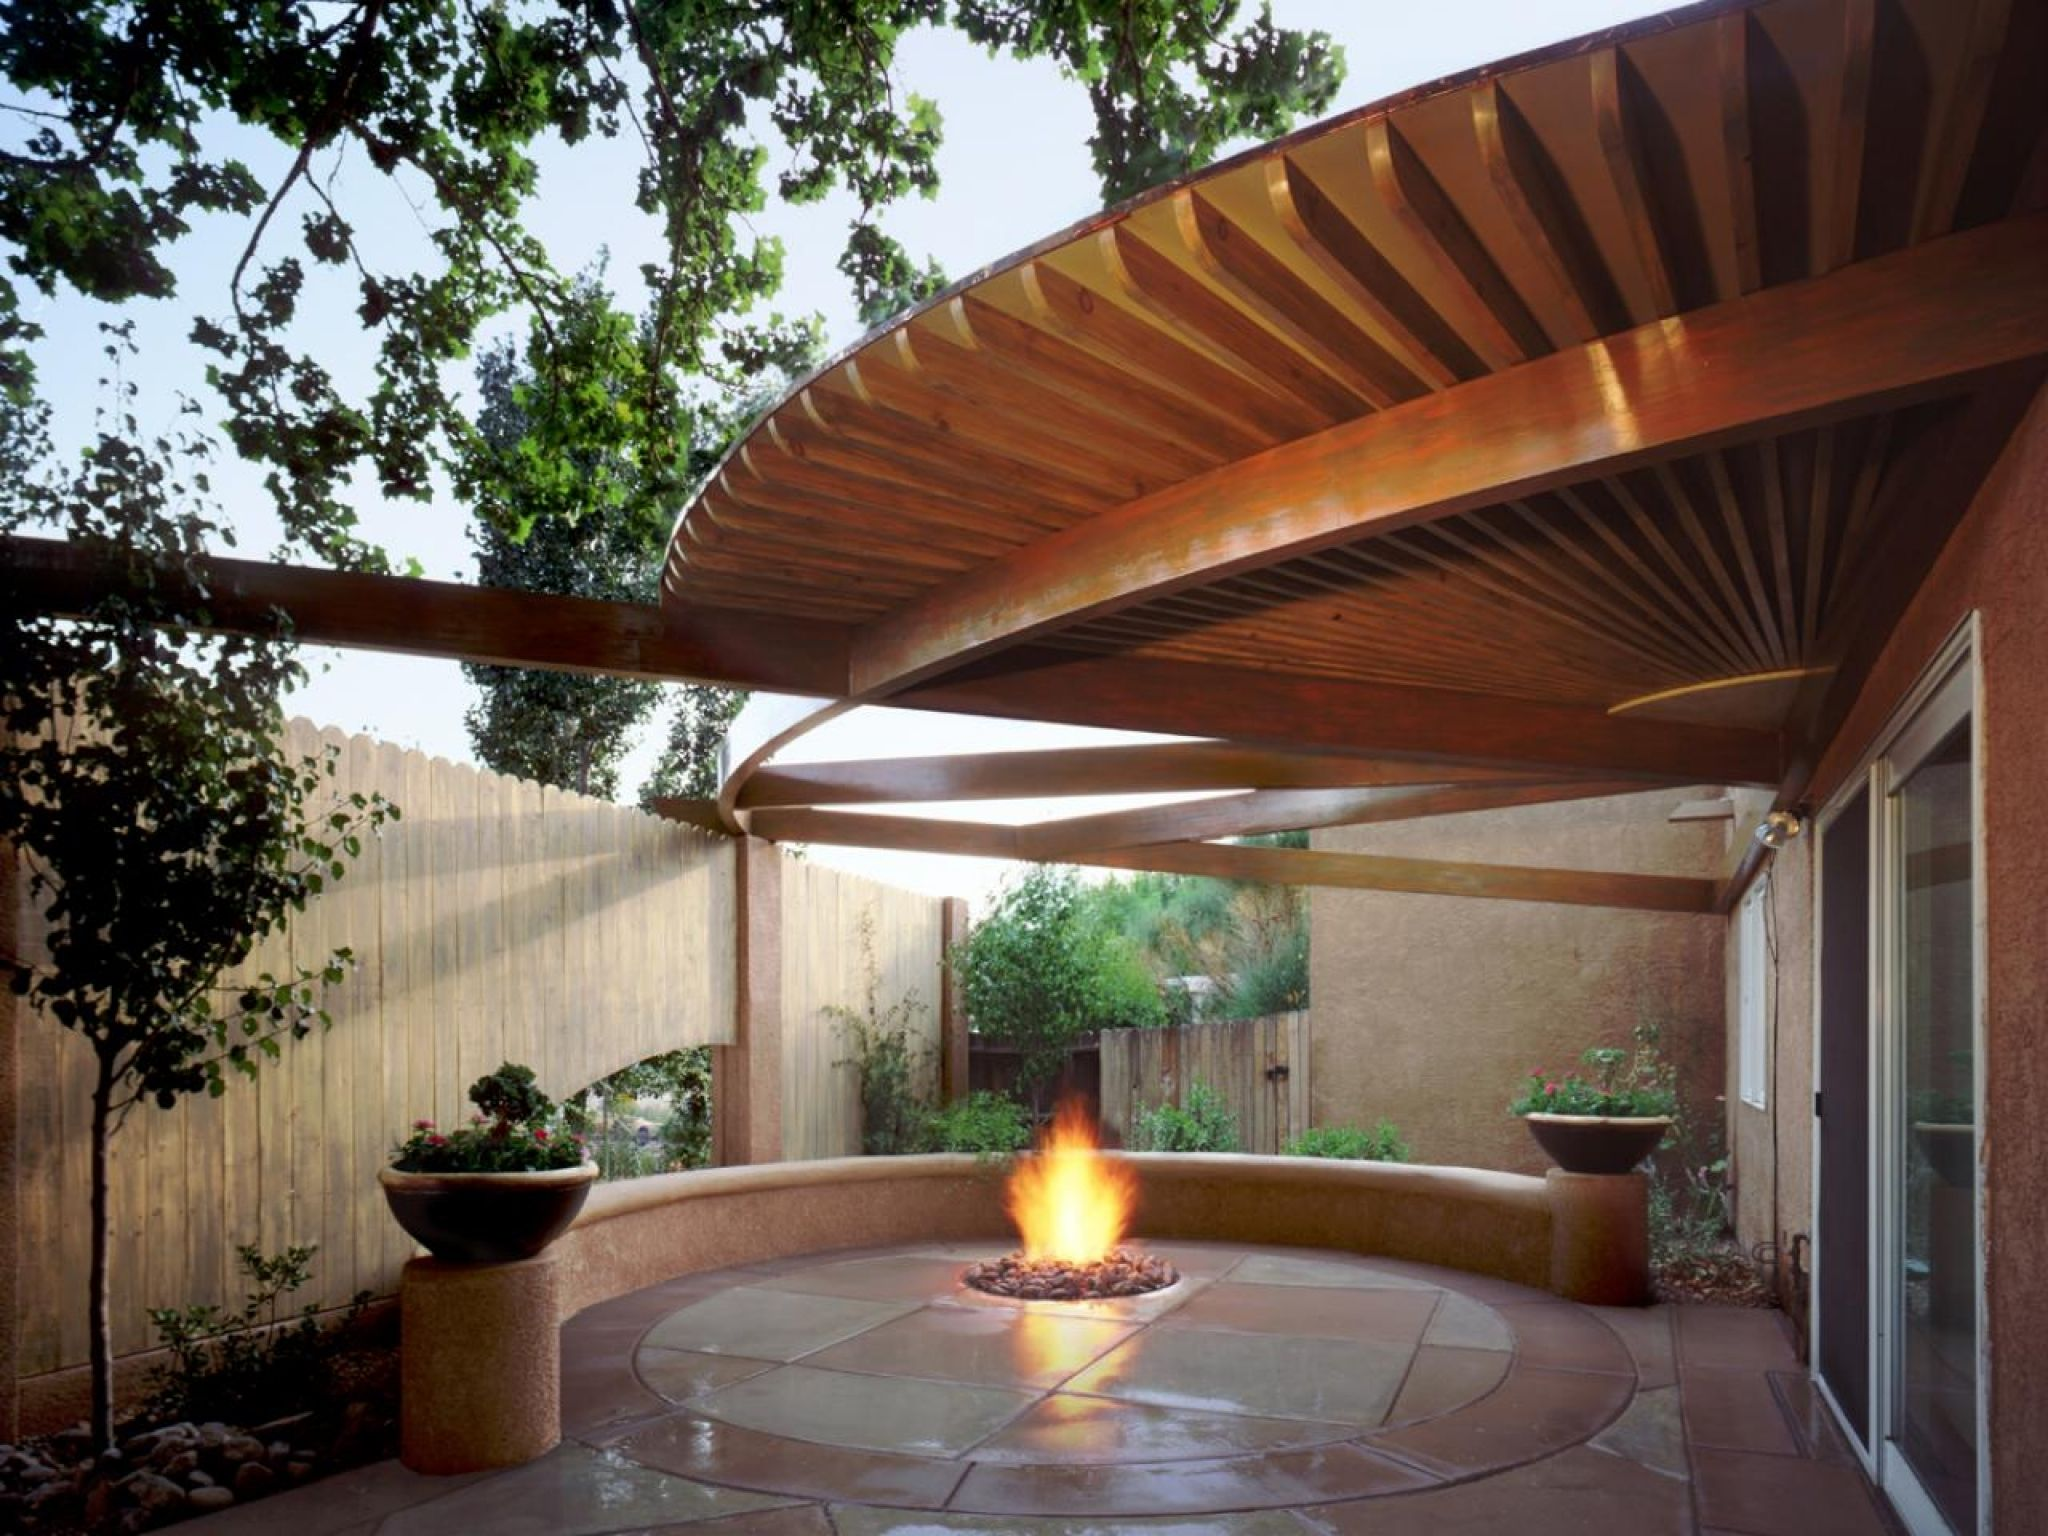 outdoor patio gas fireplace lowes paint colors interior on lowes paint colors interior id=78937